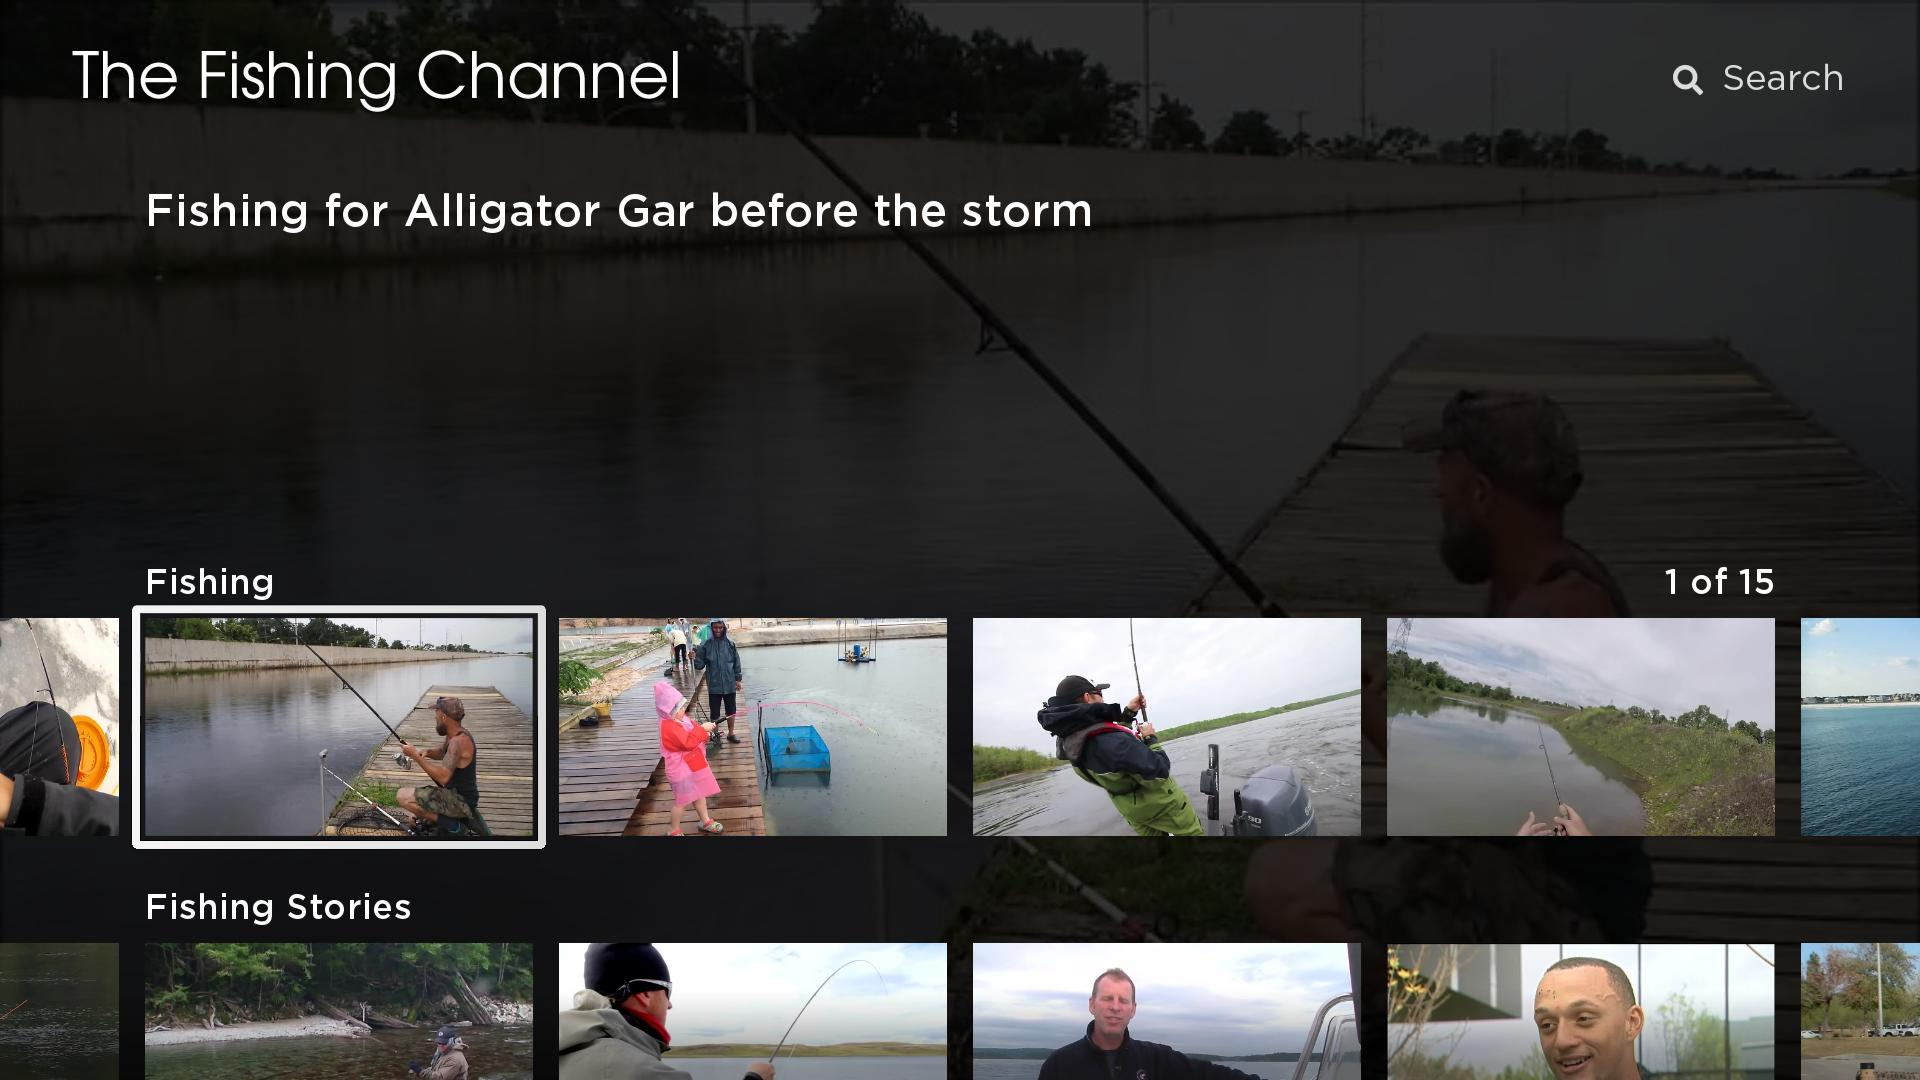 The Fishing Channel Screenshot 002